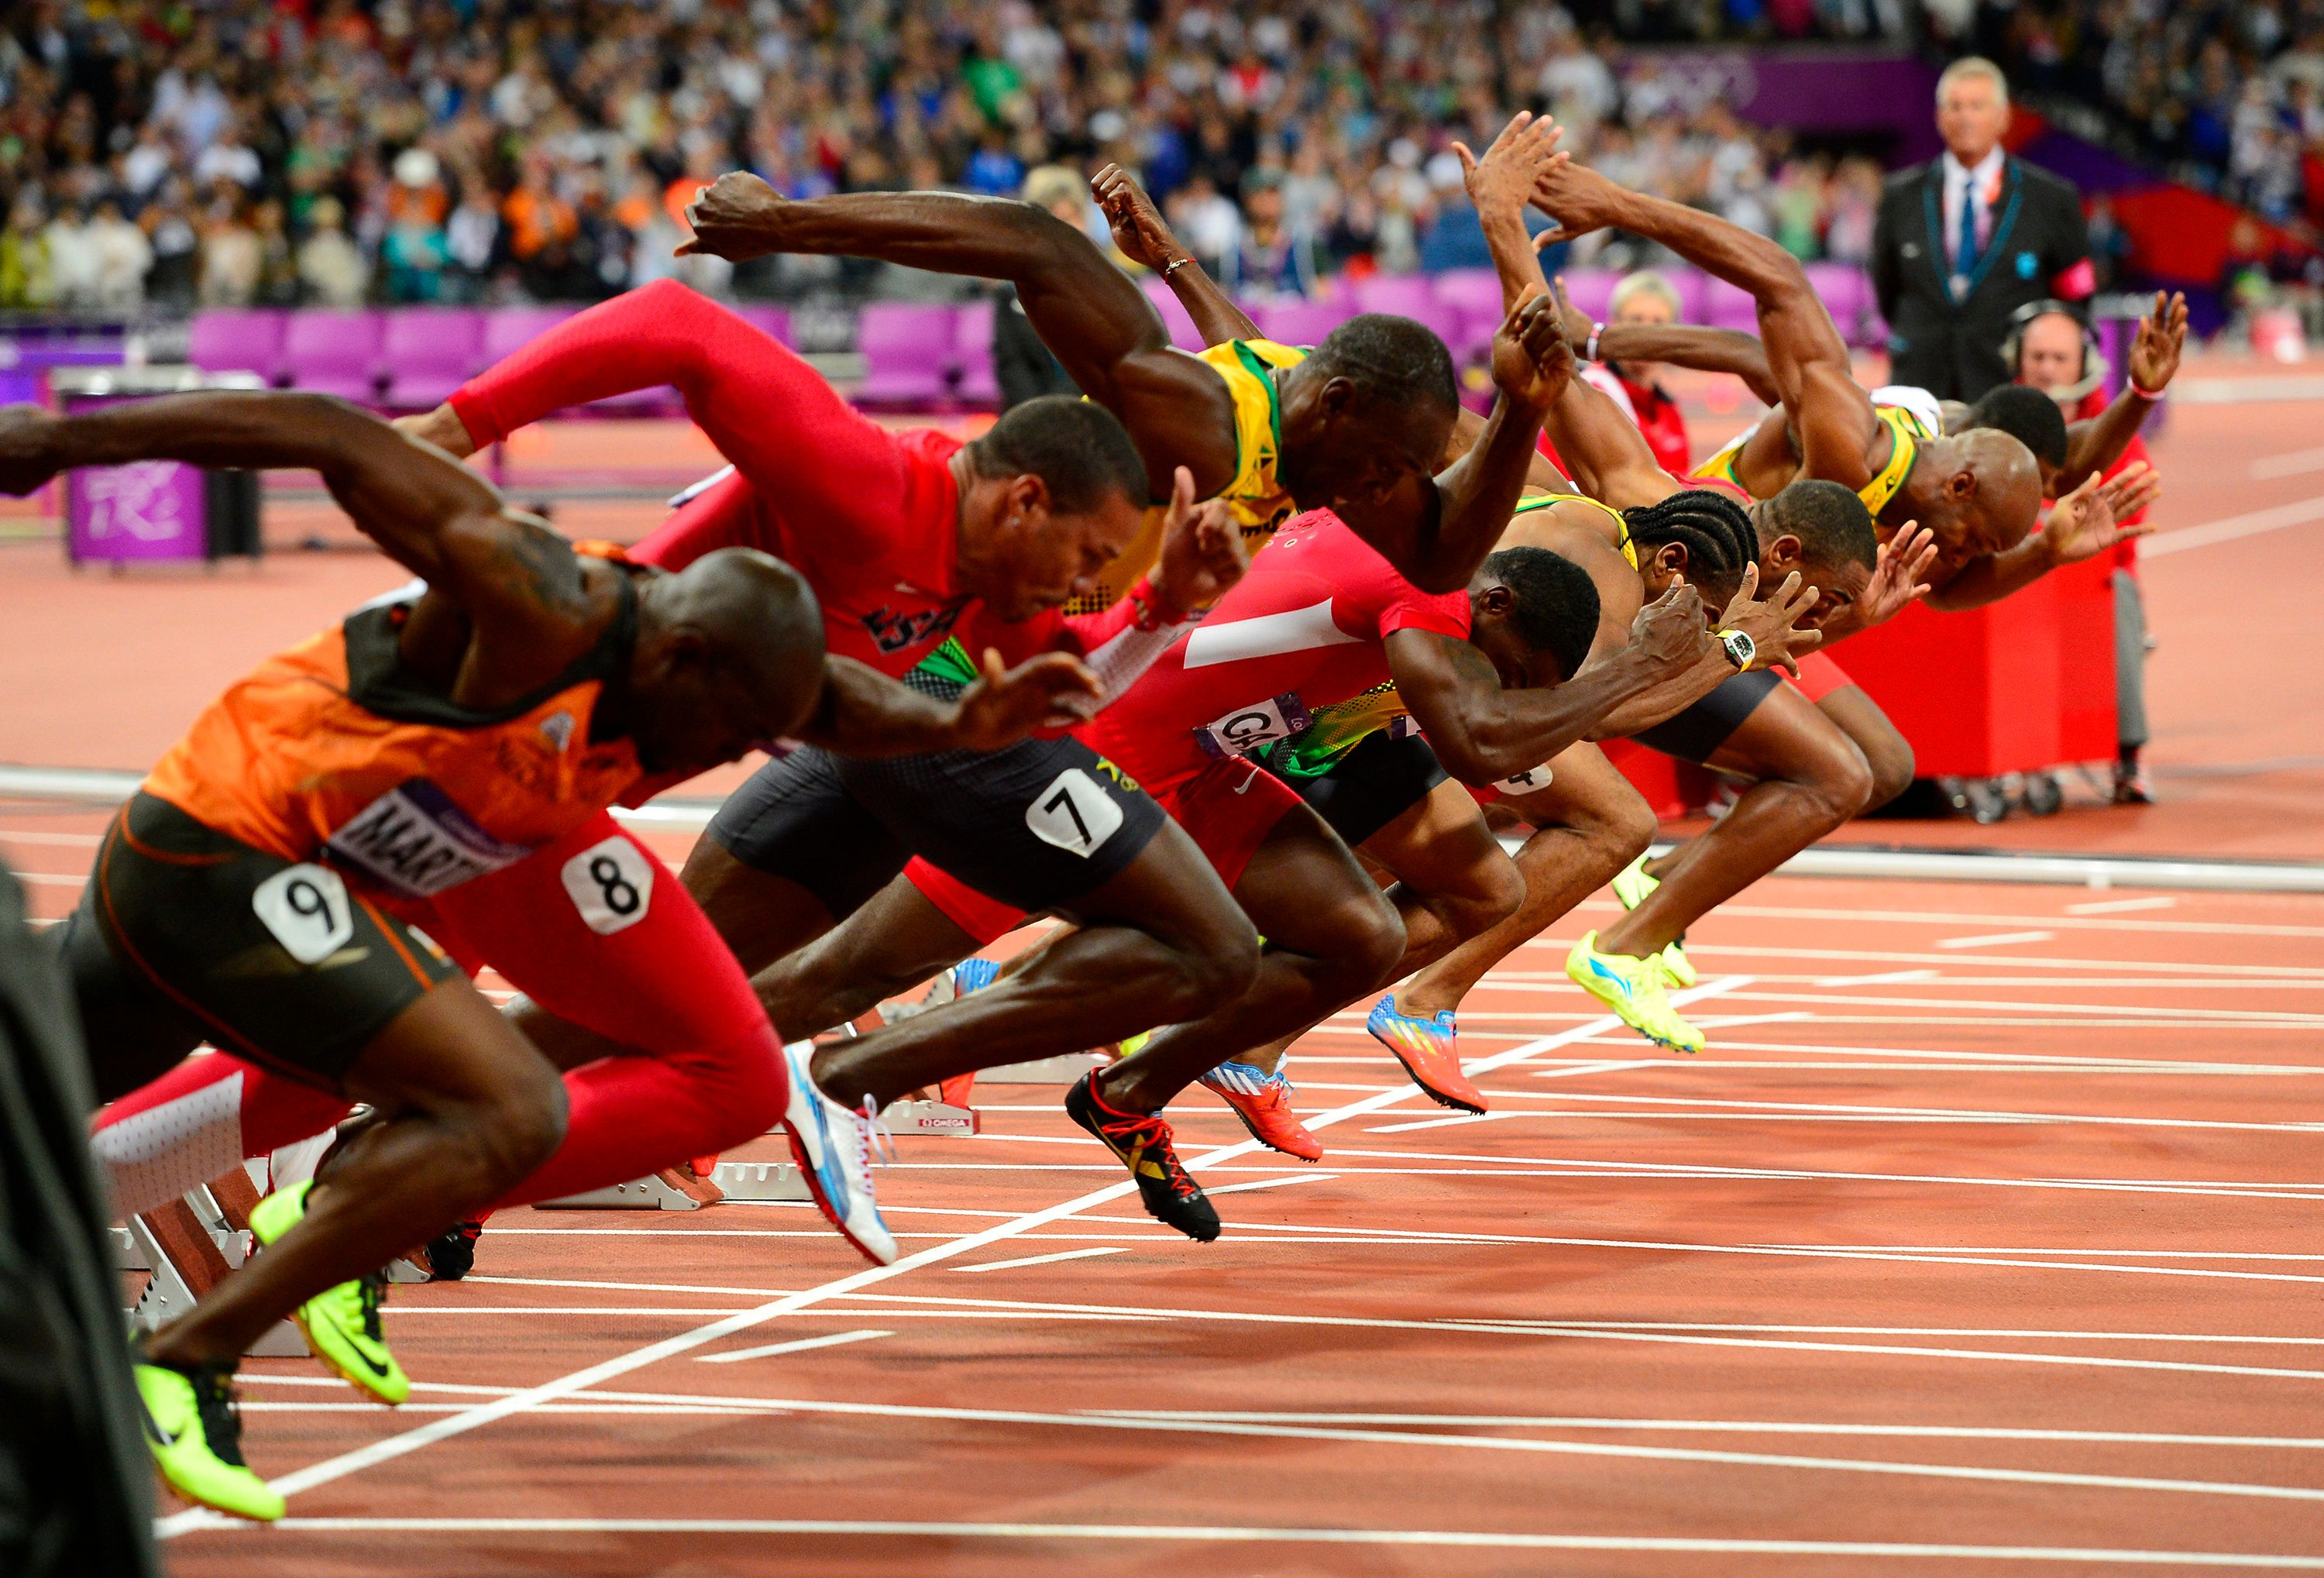 Usain Bolt of Jamaica, third from left, breaks from the start line for the men's 100m dash at Olympic Stadium during the 2012 Summer Olympic Games in London, England, Sunday, August 5, 2012. Bolt cruised to another Olympic victory in the event. (Harry E. Walker/MCT via Getty Images)